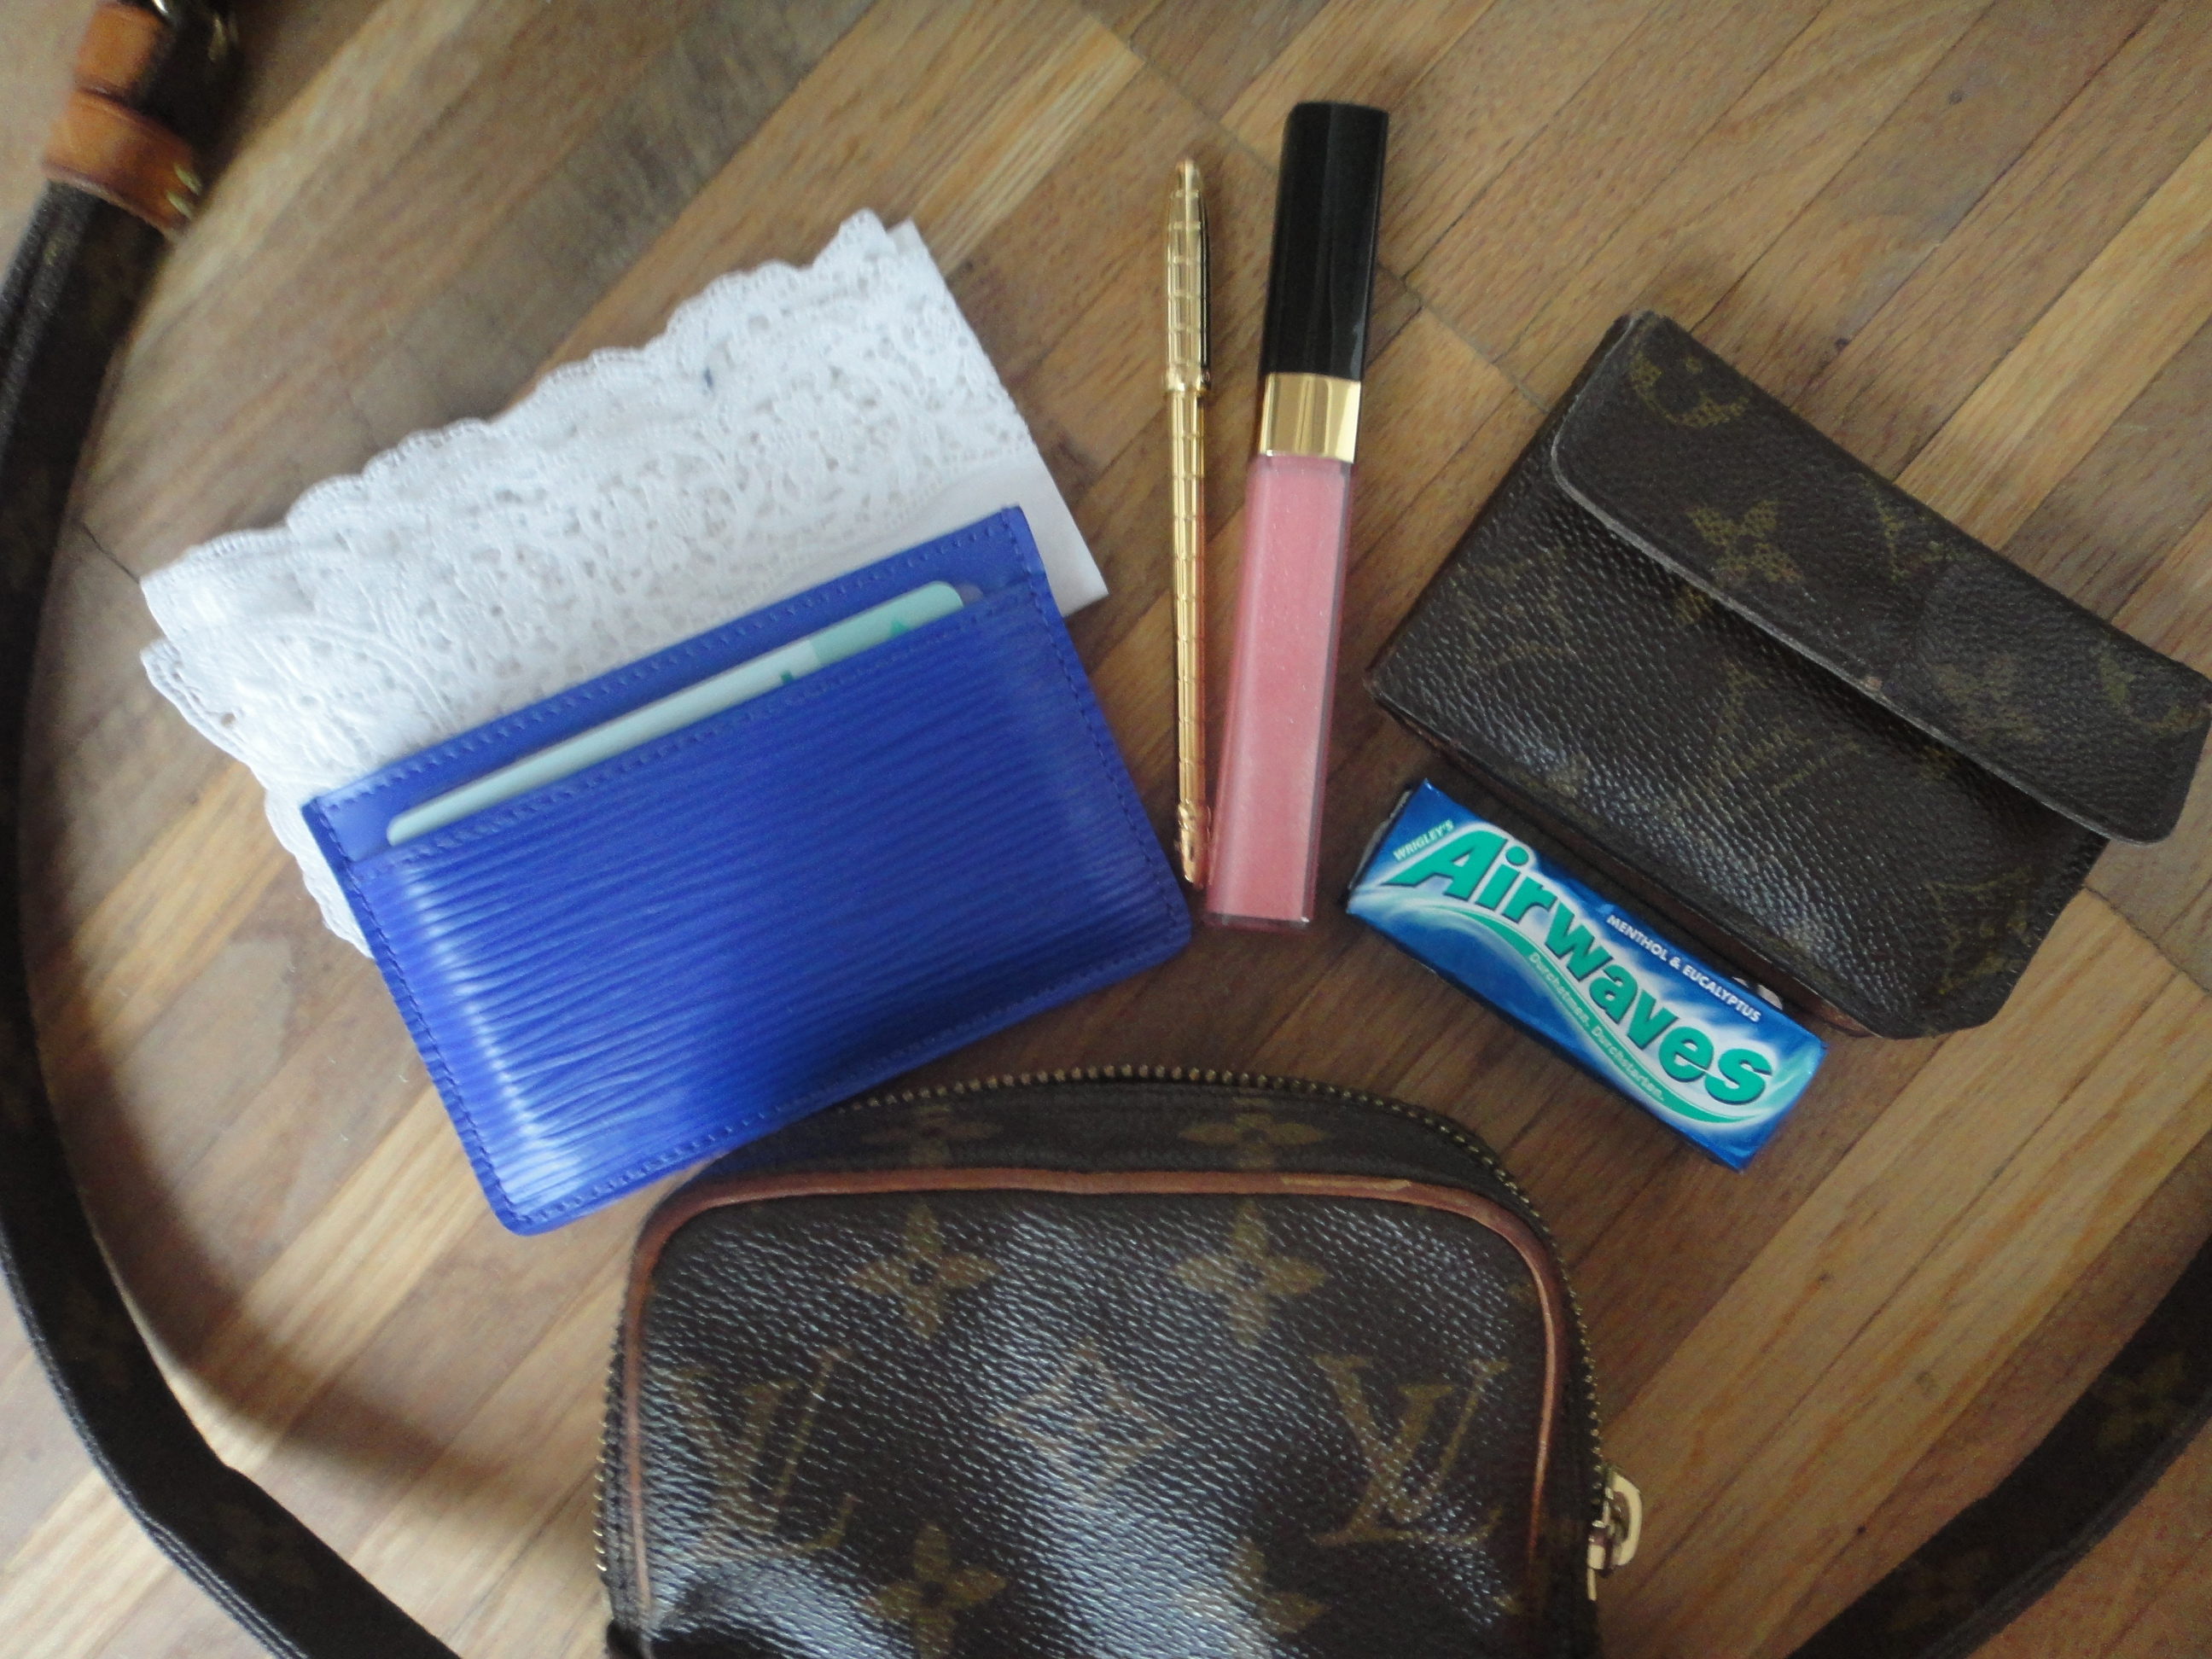 Handkerchief, LV Epi card holder, LV pencil, lip gloss, LV wallet, gum.Taschentuch, LV Epi Kartenetui, LV Drehbleistift, Lipgloss, Monogram Portemonnaie, Kaugummi